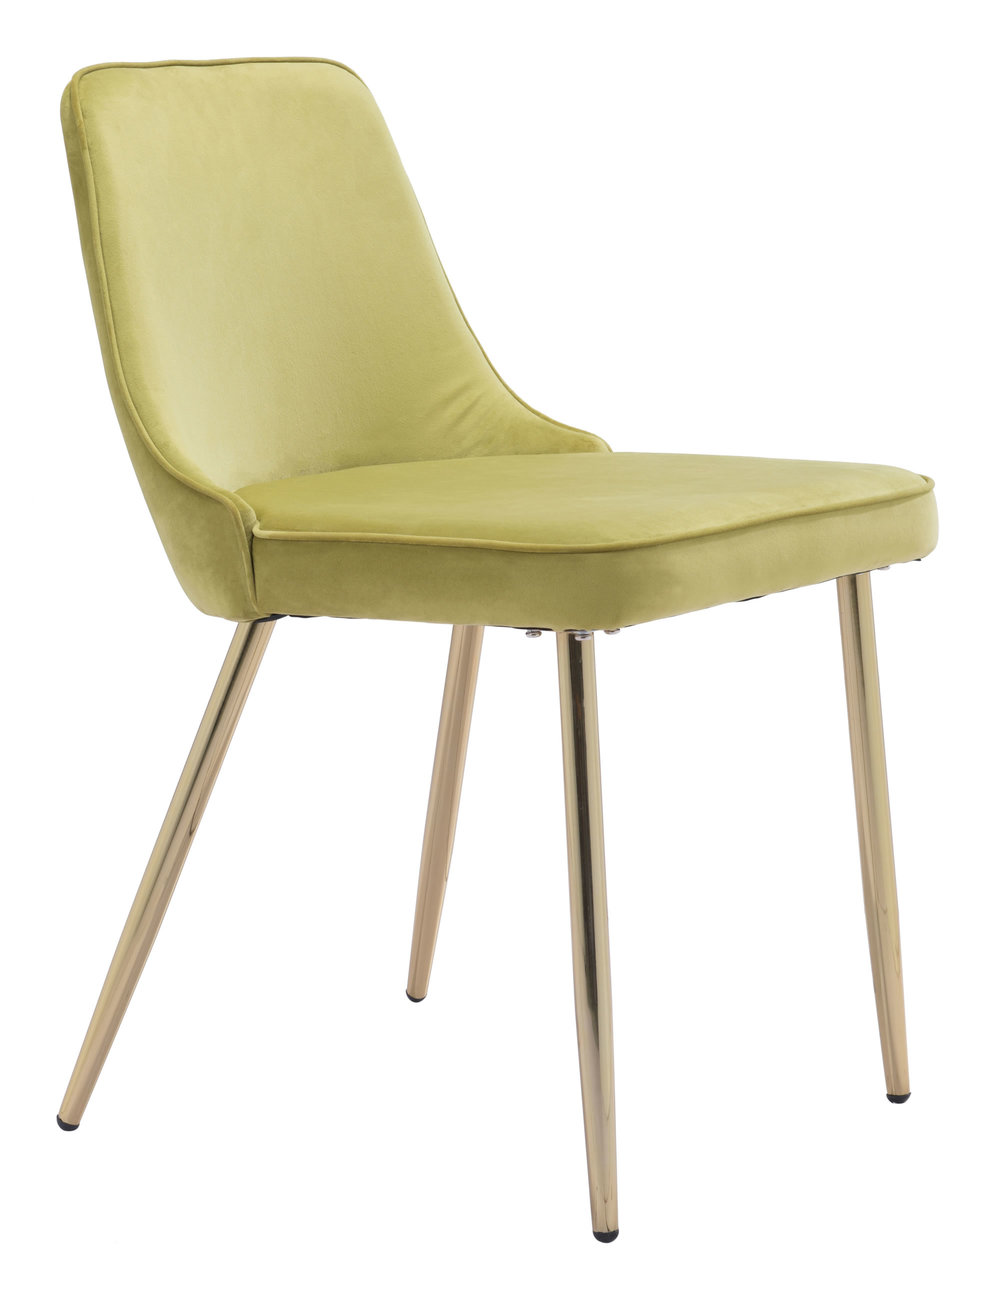 Zuo Modern Contemporary - Merritt Dining Chair - Set of 2 - Green